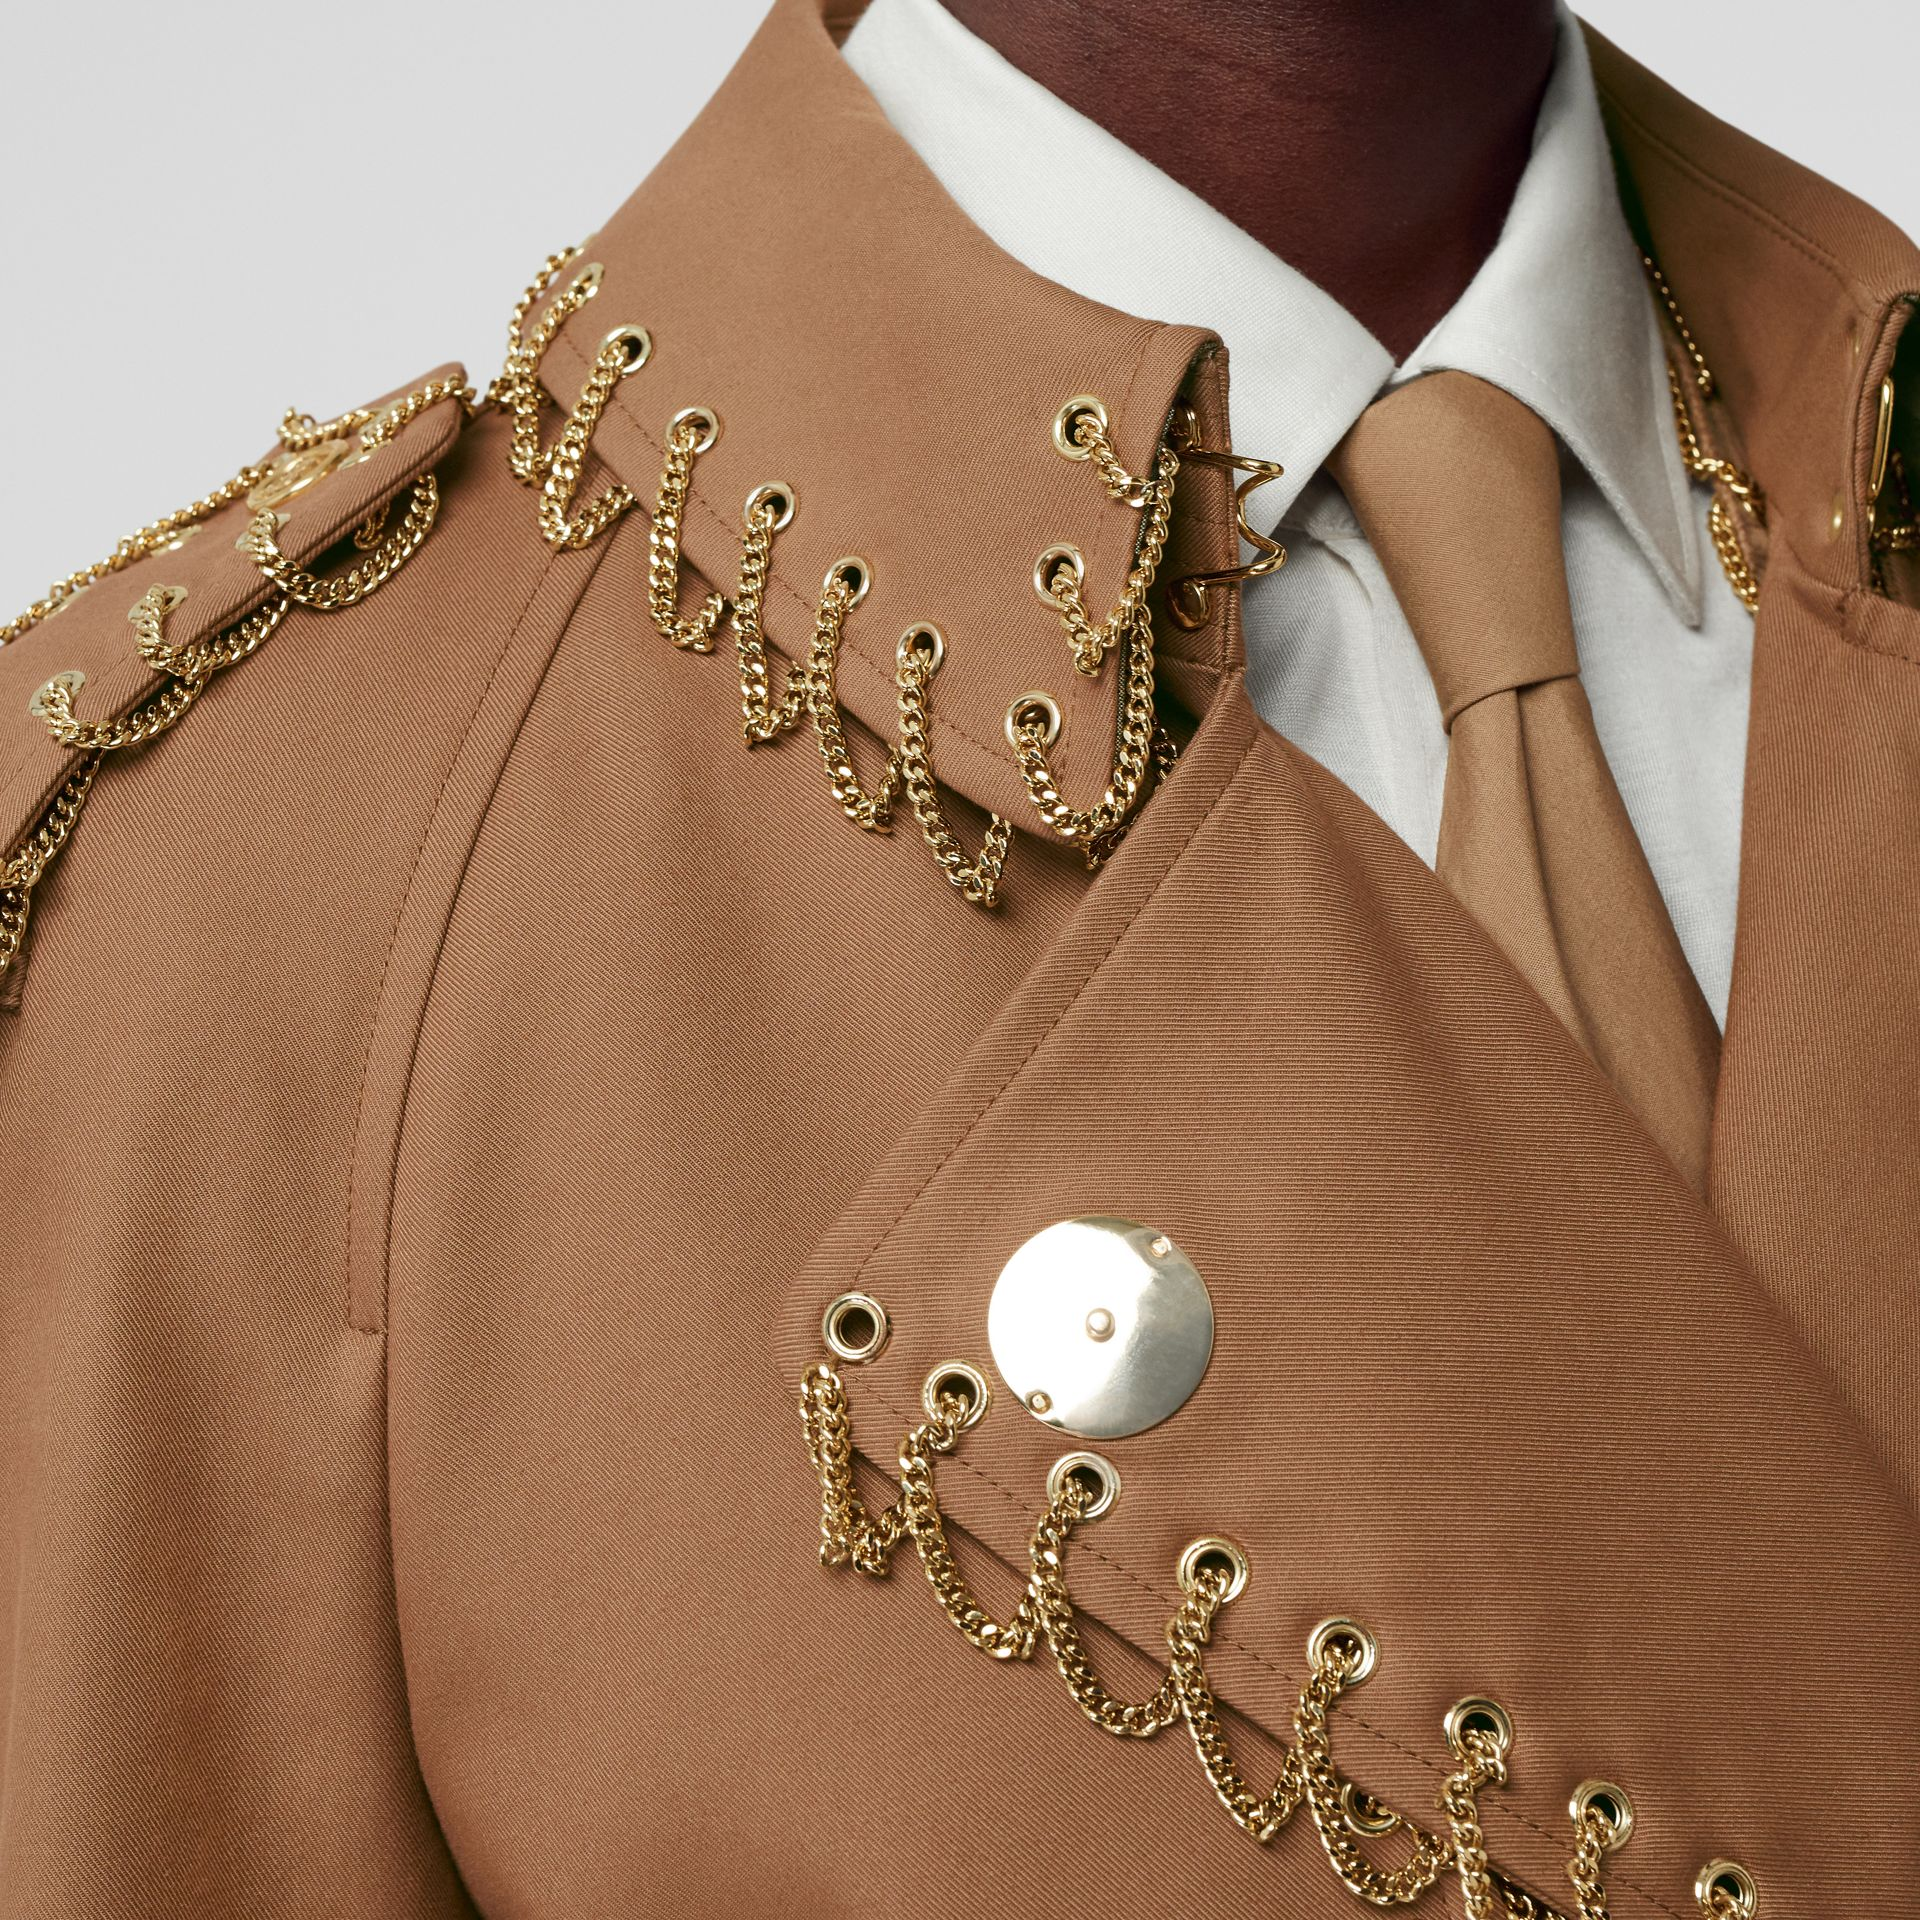 Chain Detail Cotton Gabardine Trench Coat in Warm Walnut - Women | Burberry - gallery image 4